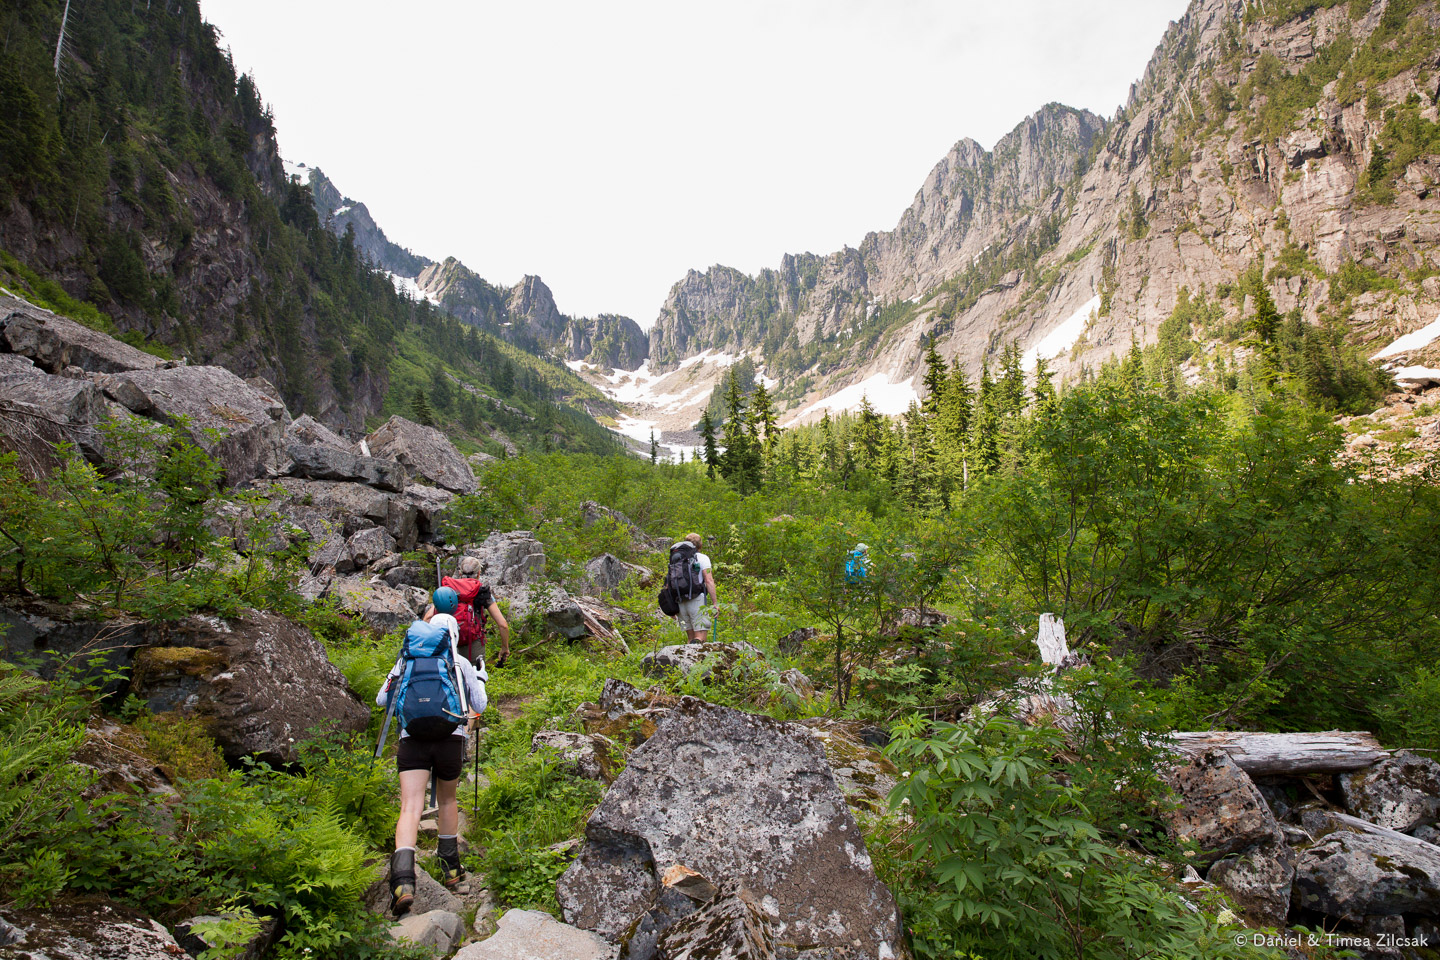 Hiking up the valley towards Headlee Pass